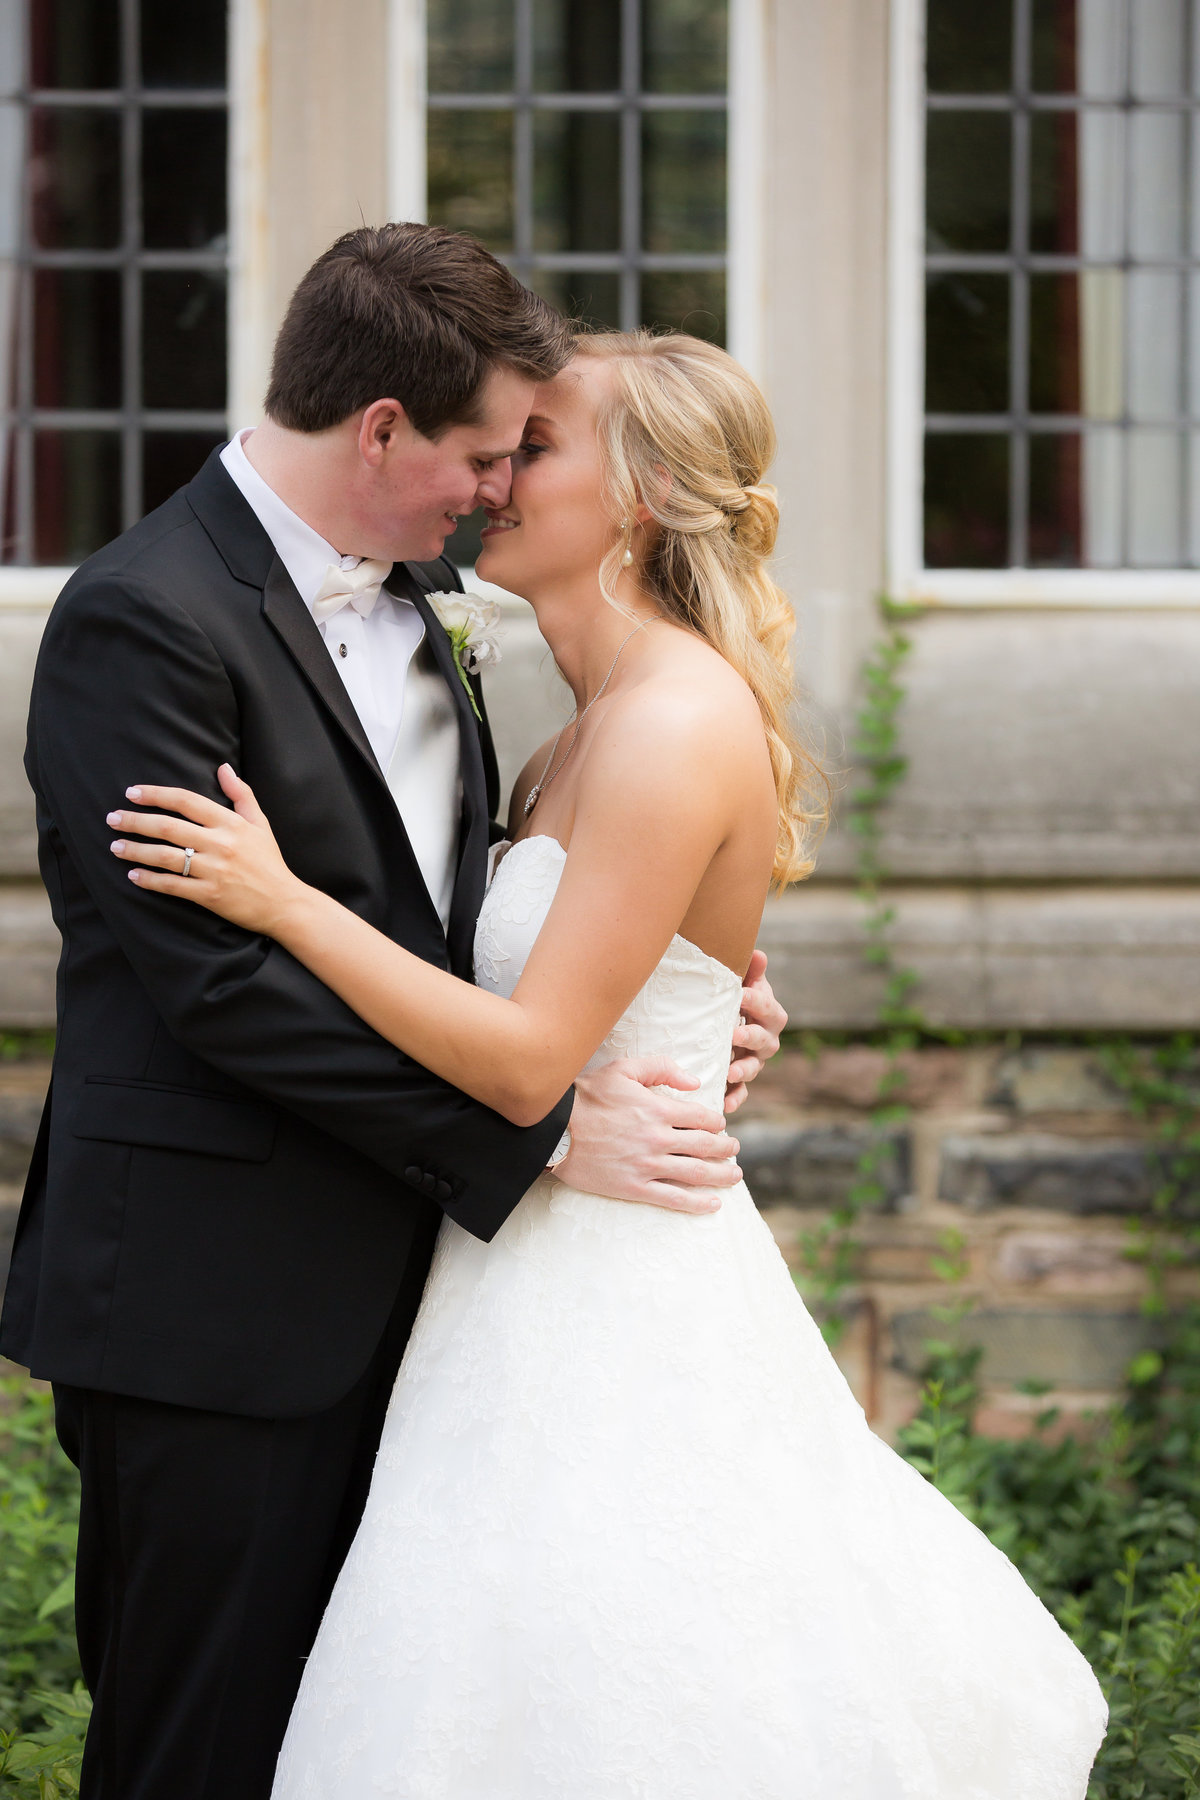 Chapel Wedding - Scaritt Bennett - Nashville Bride - Nashville Brides - Nashville Wedding - Nashvilel Weddings - Southern Bride - Traditional Bride062 (1)